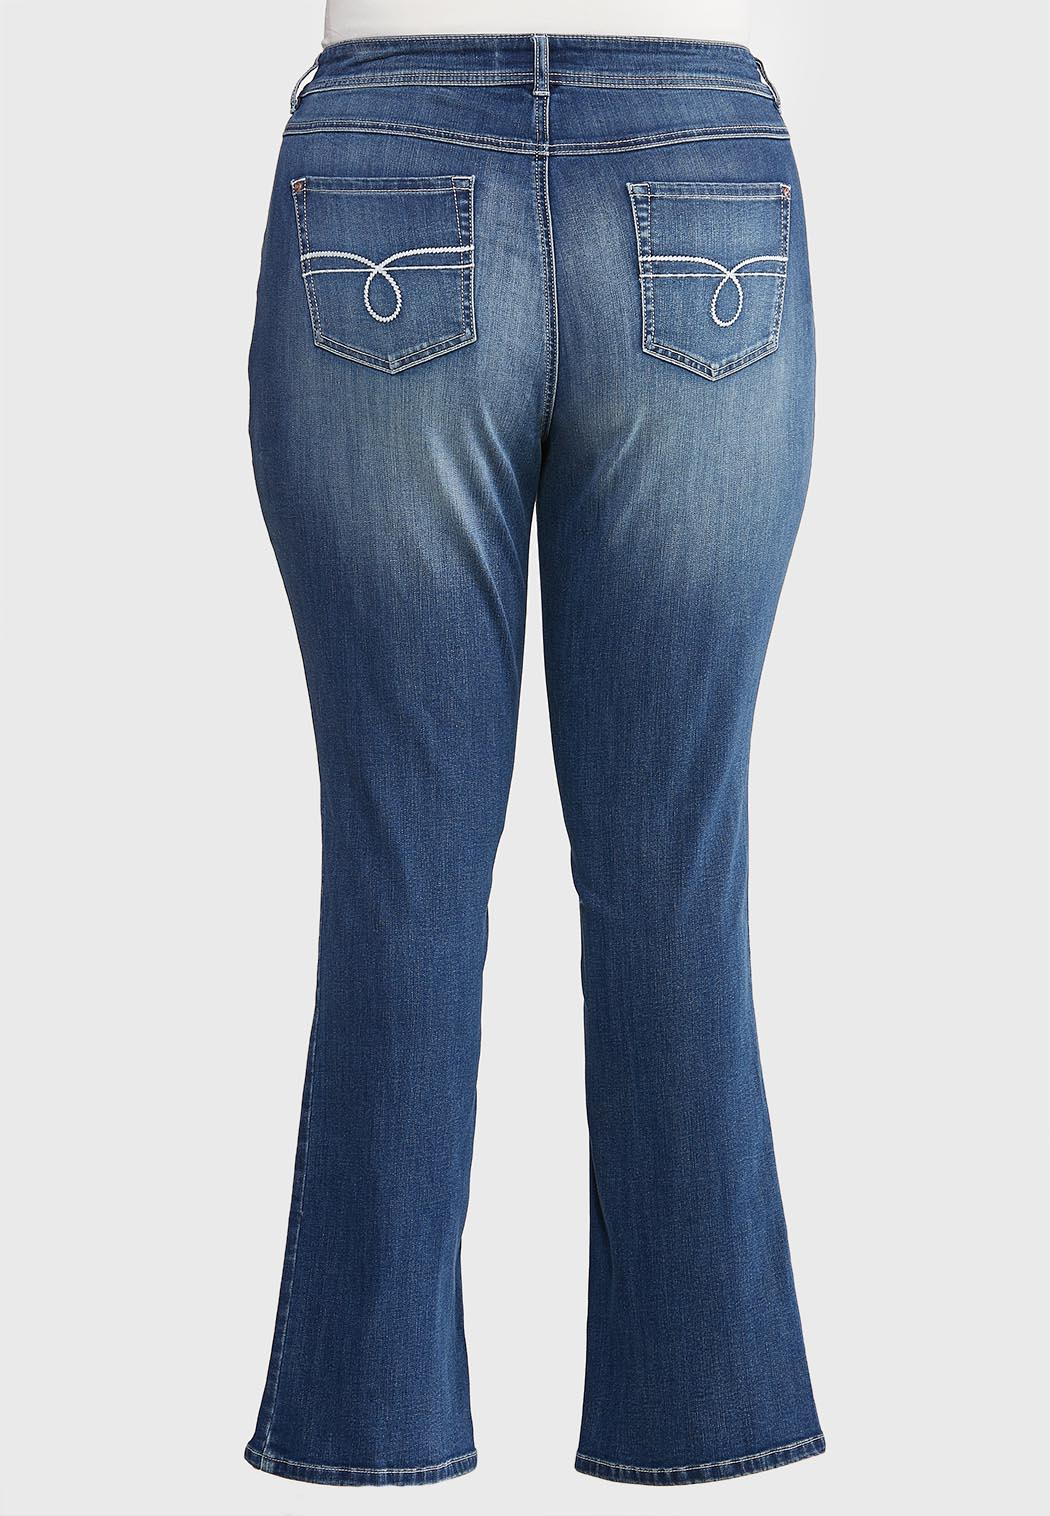 Plus Extended Dark Wash Bootcut Jeans (Item #43929439)